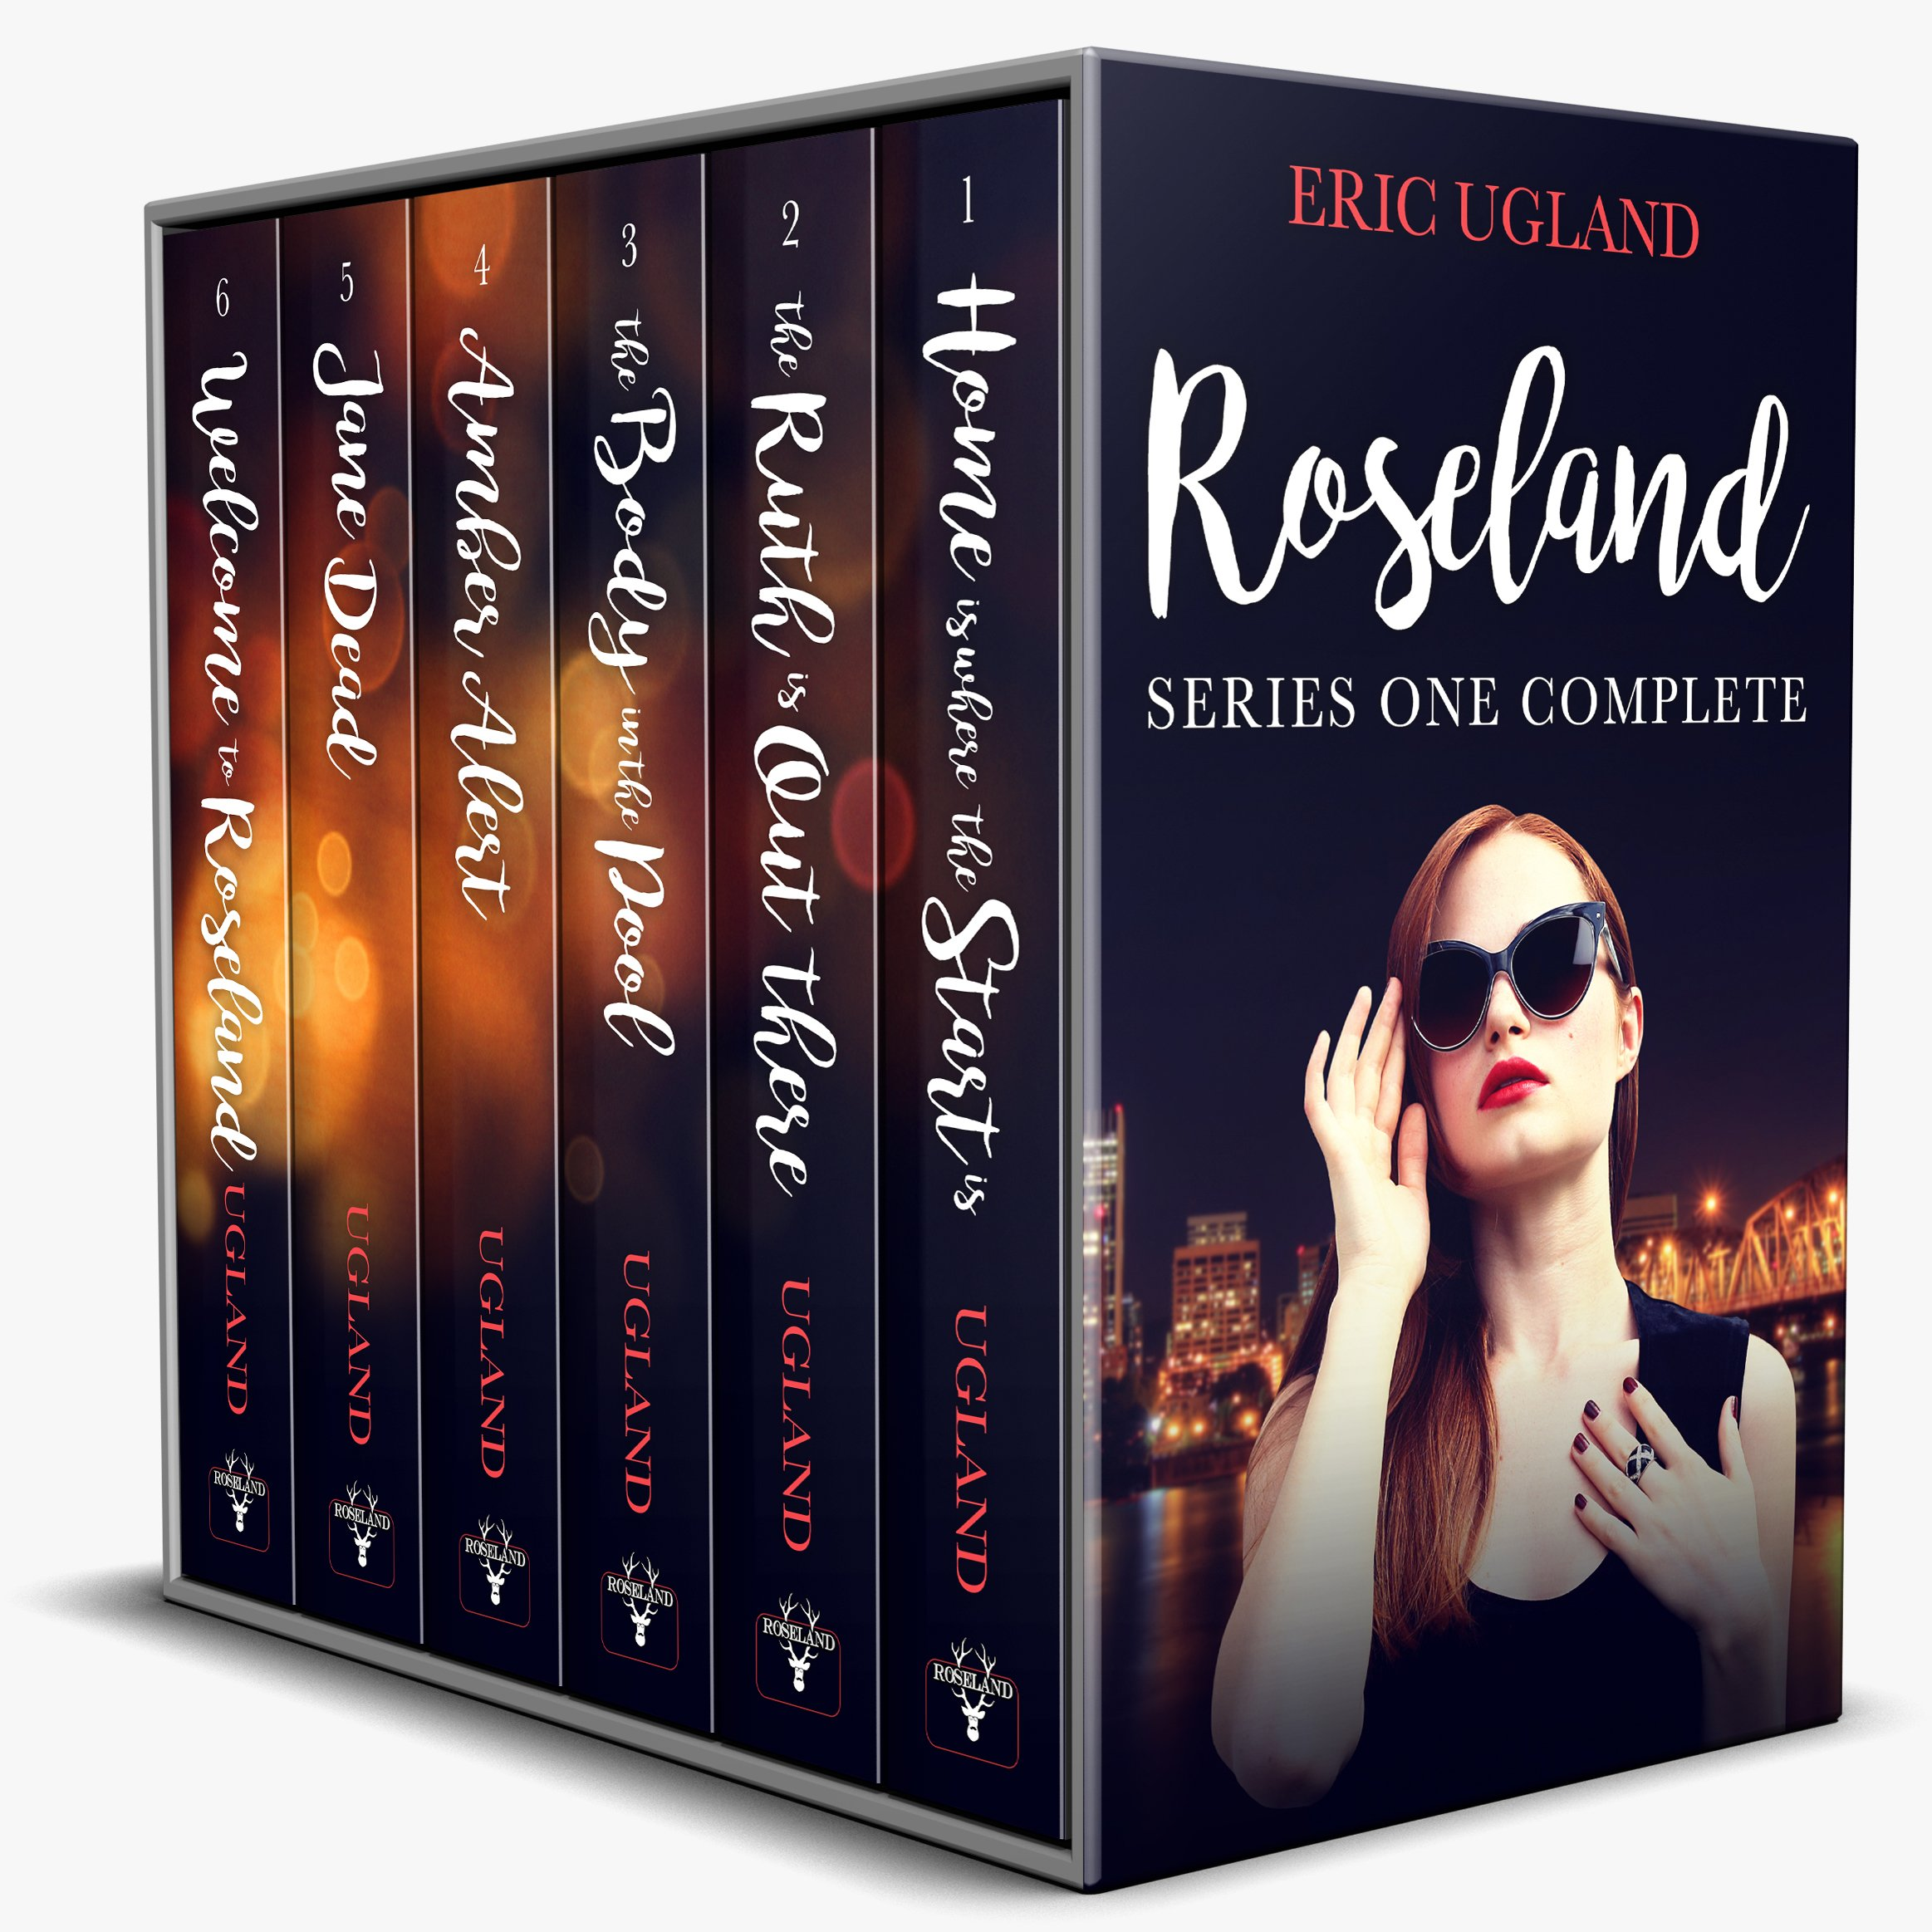 Roseland: Series One Complete